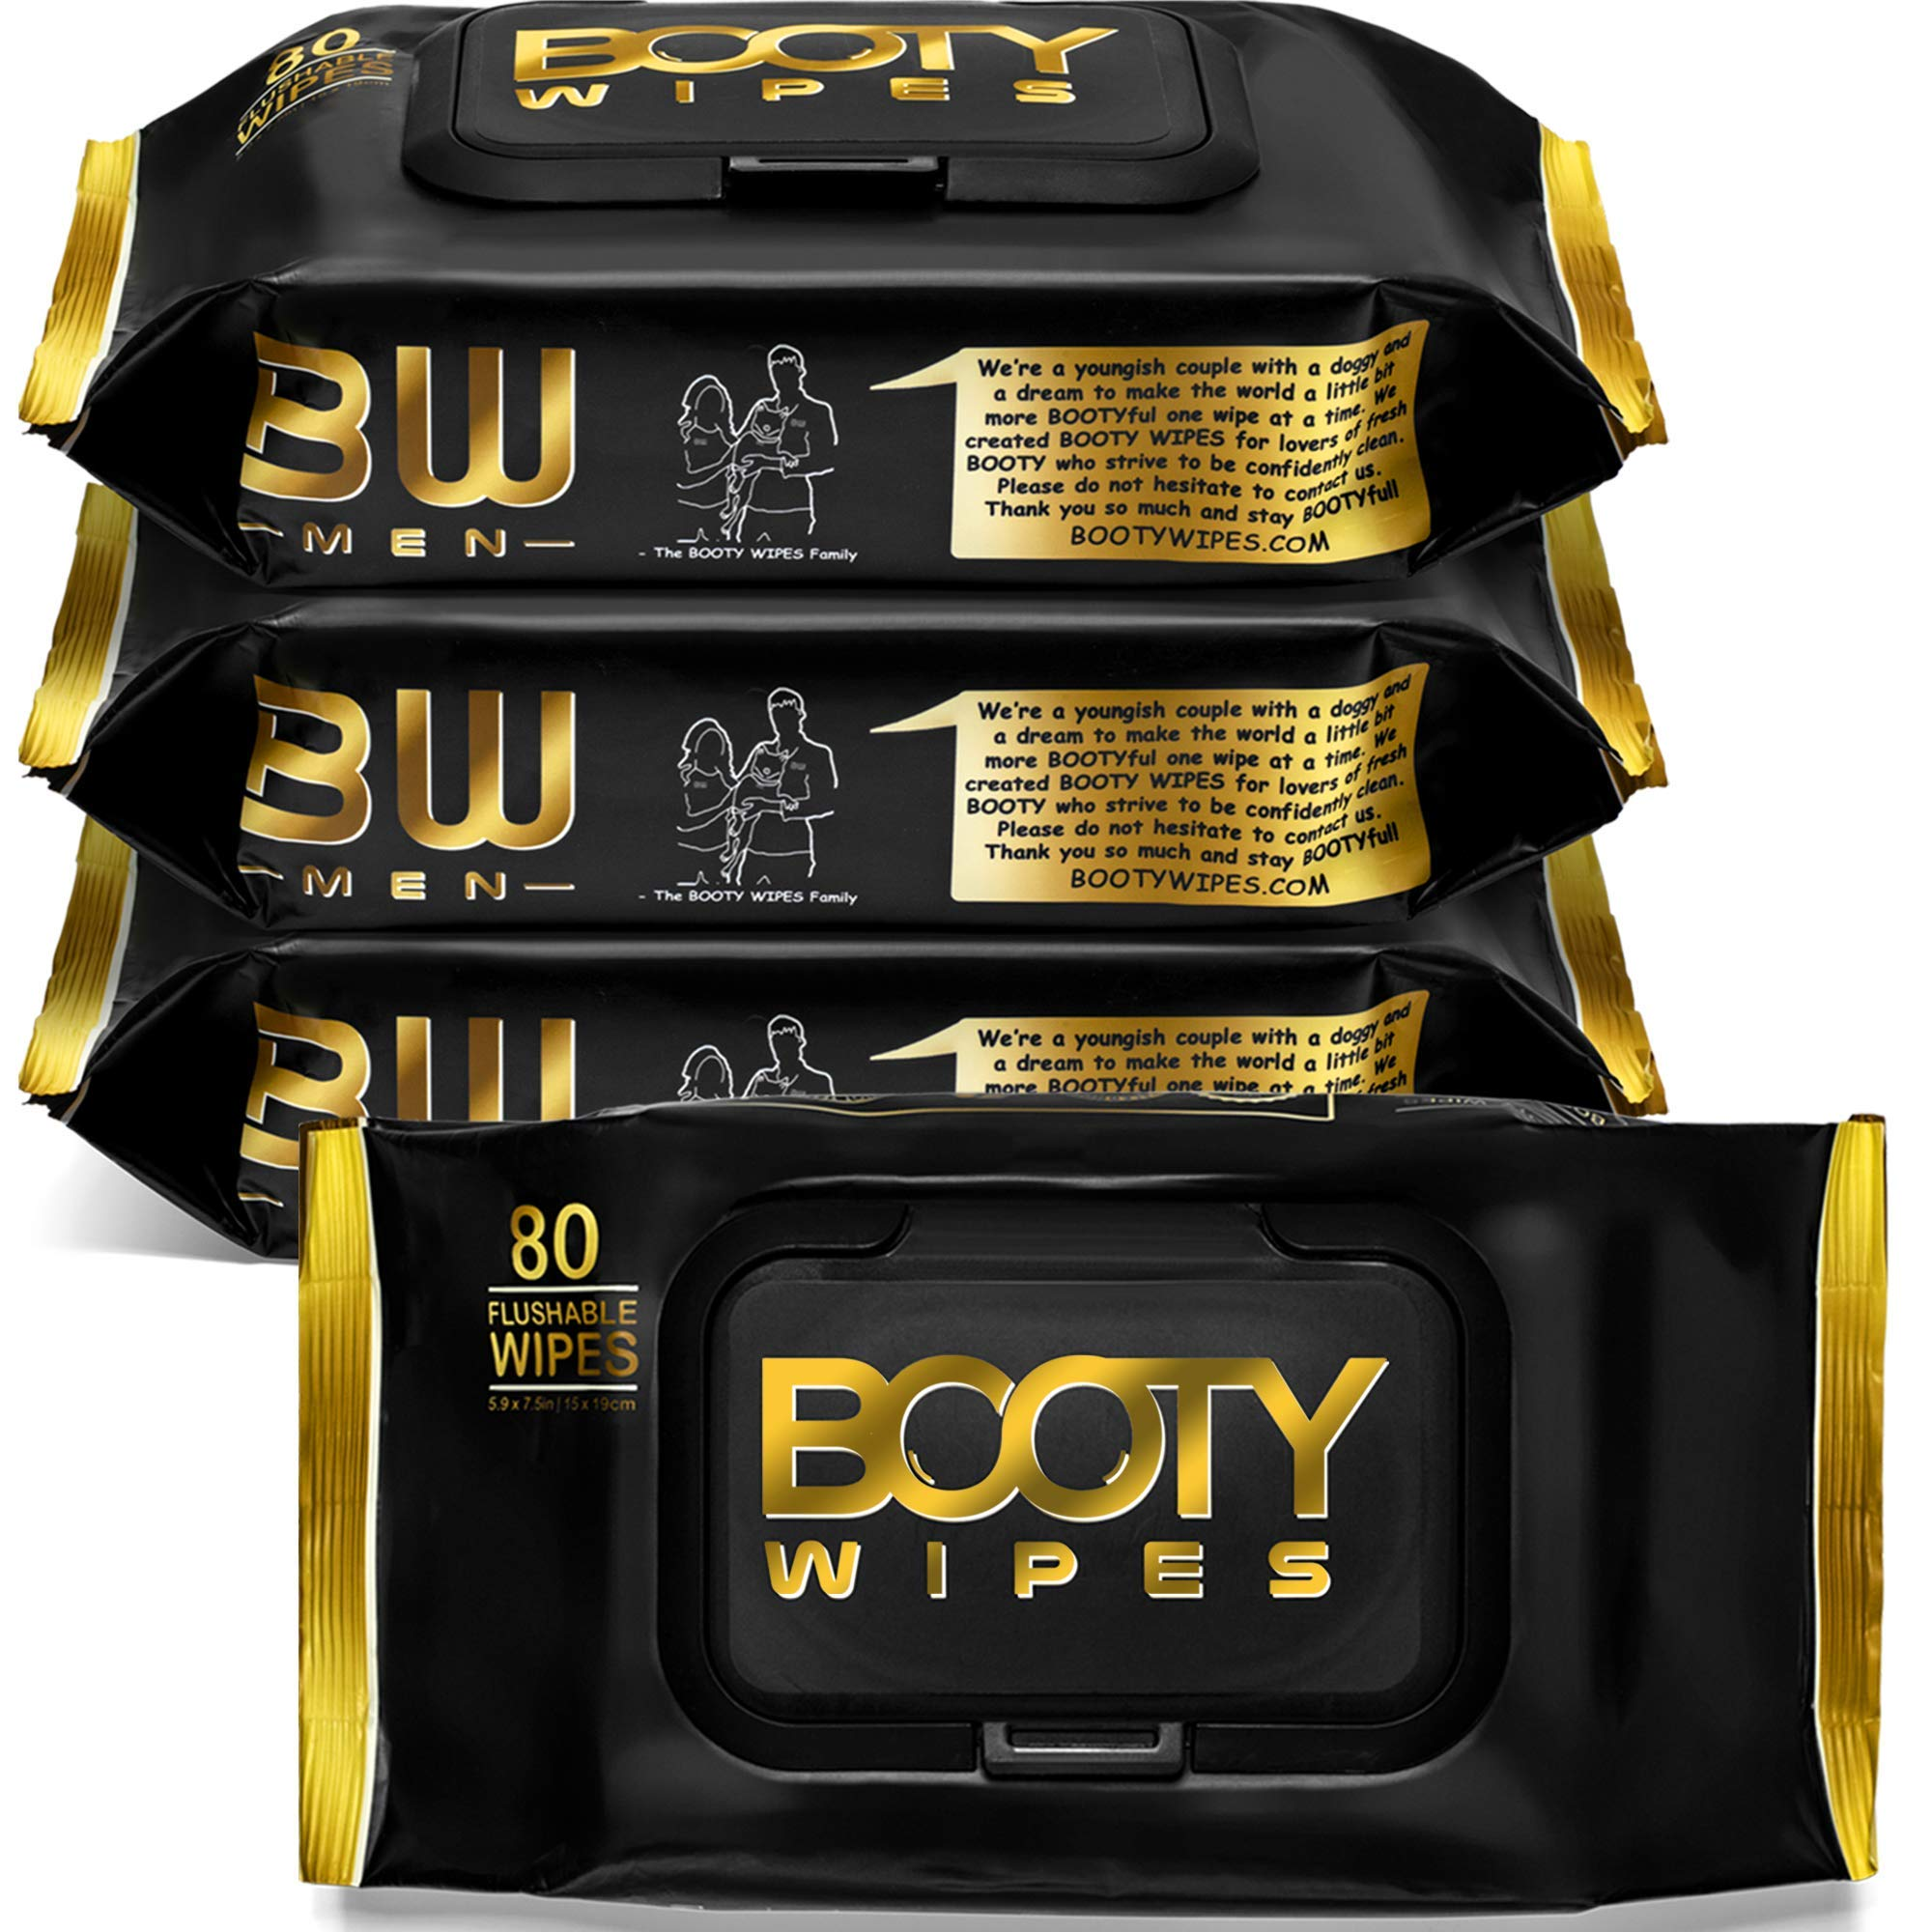 BOOTY WIPES for Men - 320 Flushable Wet Wipes for Adults, Man Wipes Infused with Vitamin-E & Aloe (320 Wipes Total - 4 Flip-Top Packs of 80) Biodegradable, Hypoallergenic